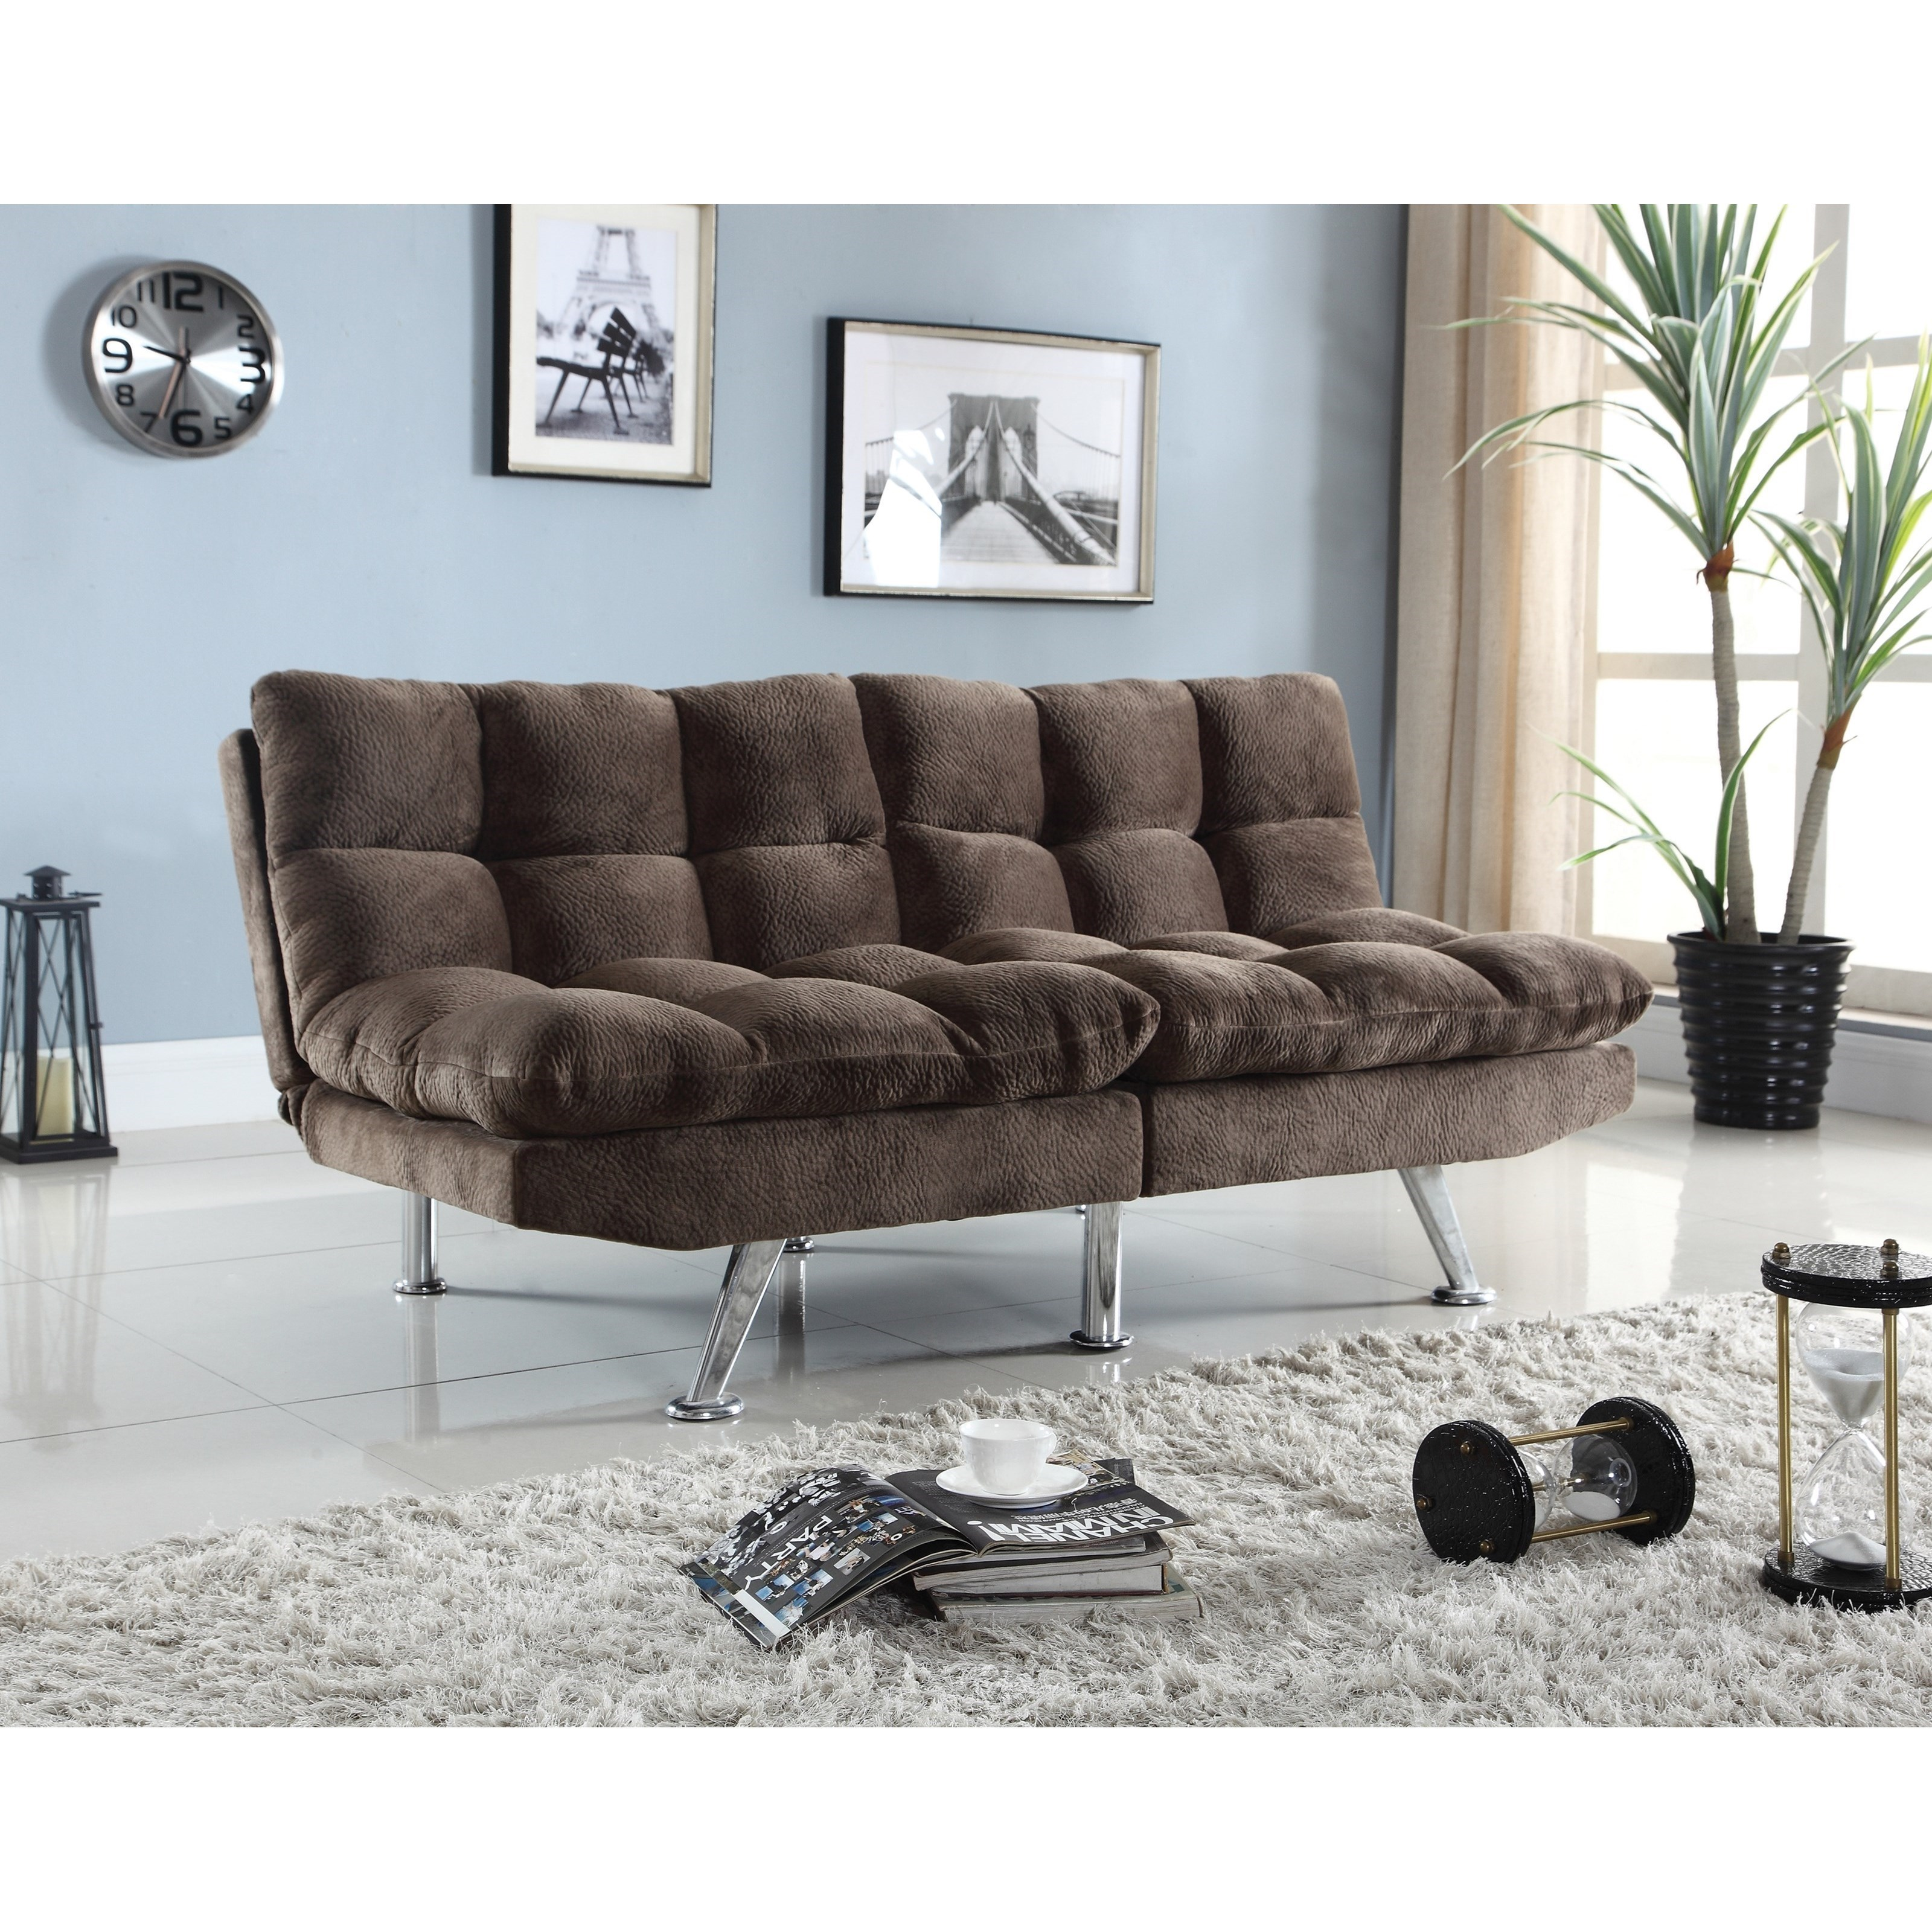 coaster futons plush sofa bed with padded velvet coaster futons plush sofa bed with padded velvet   standard      rh   standardfurniture